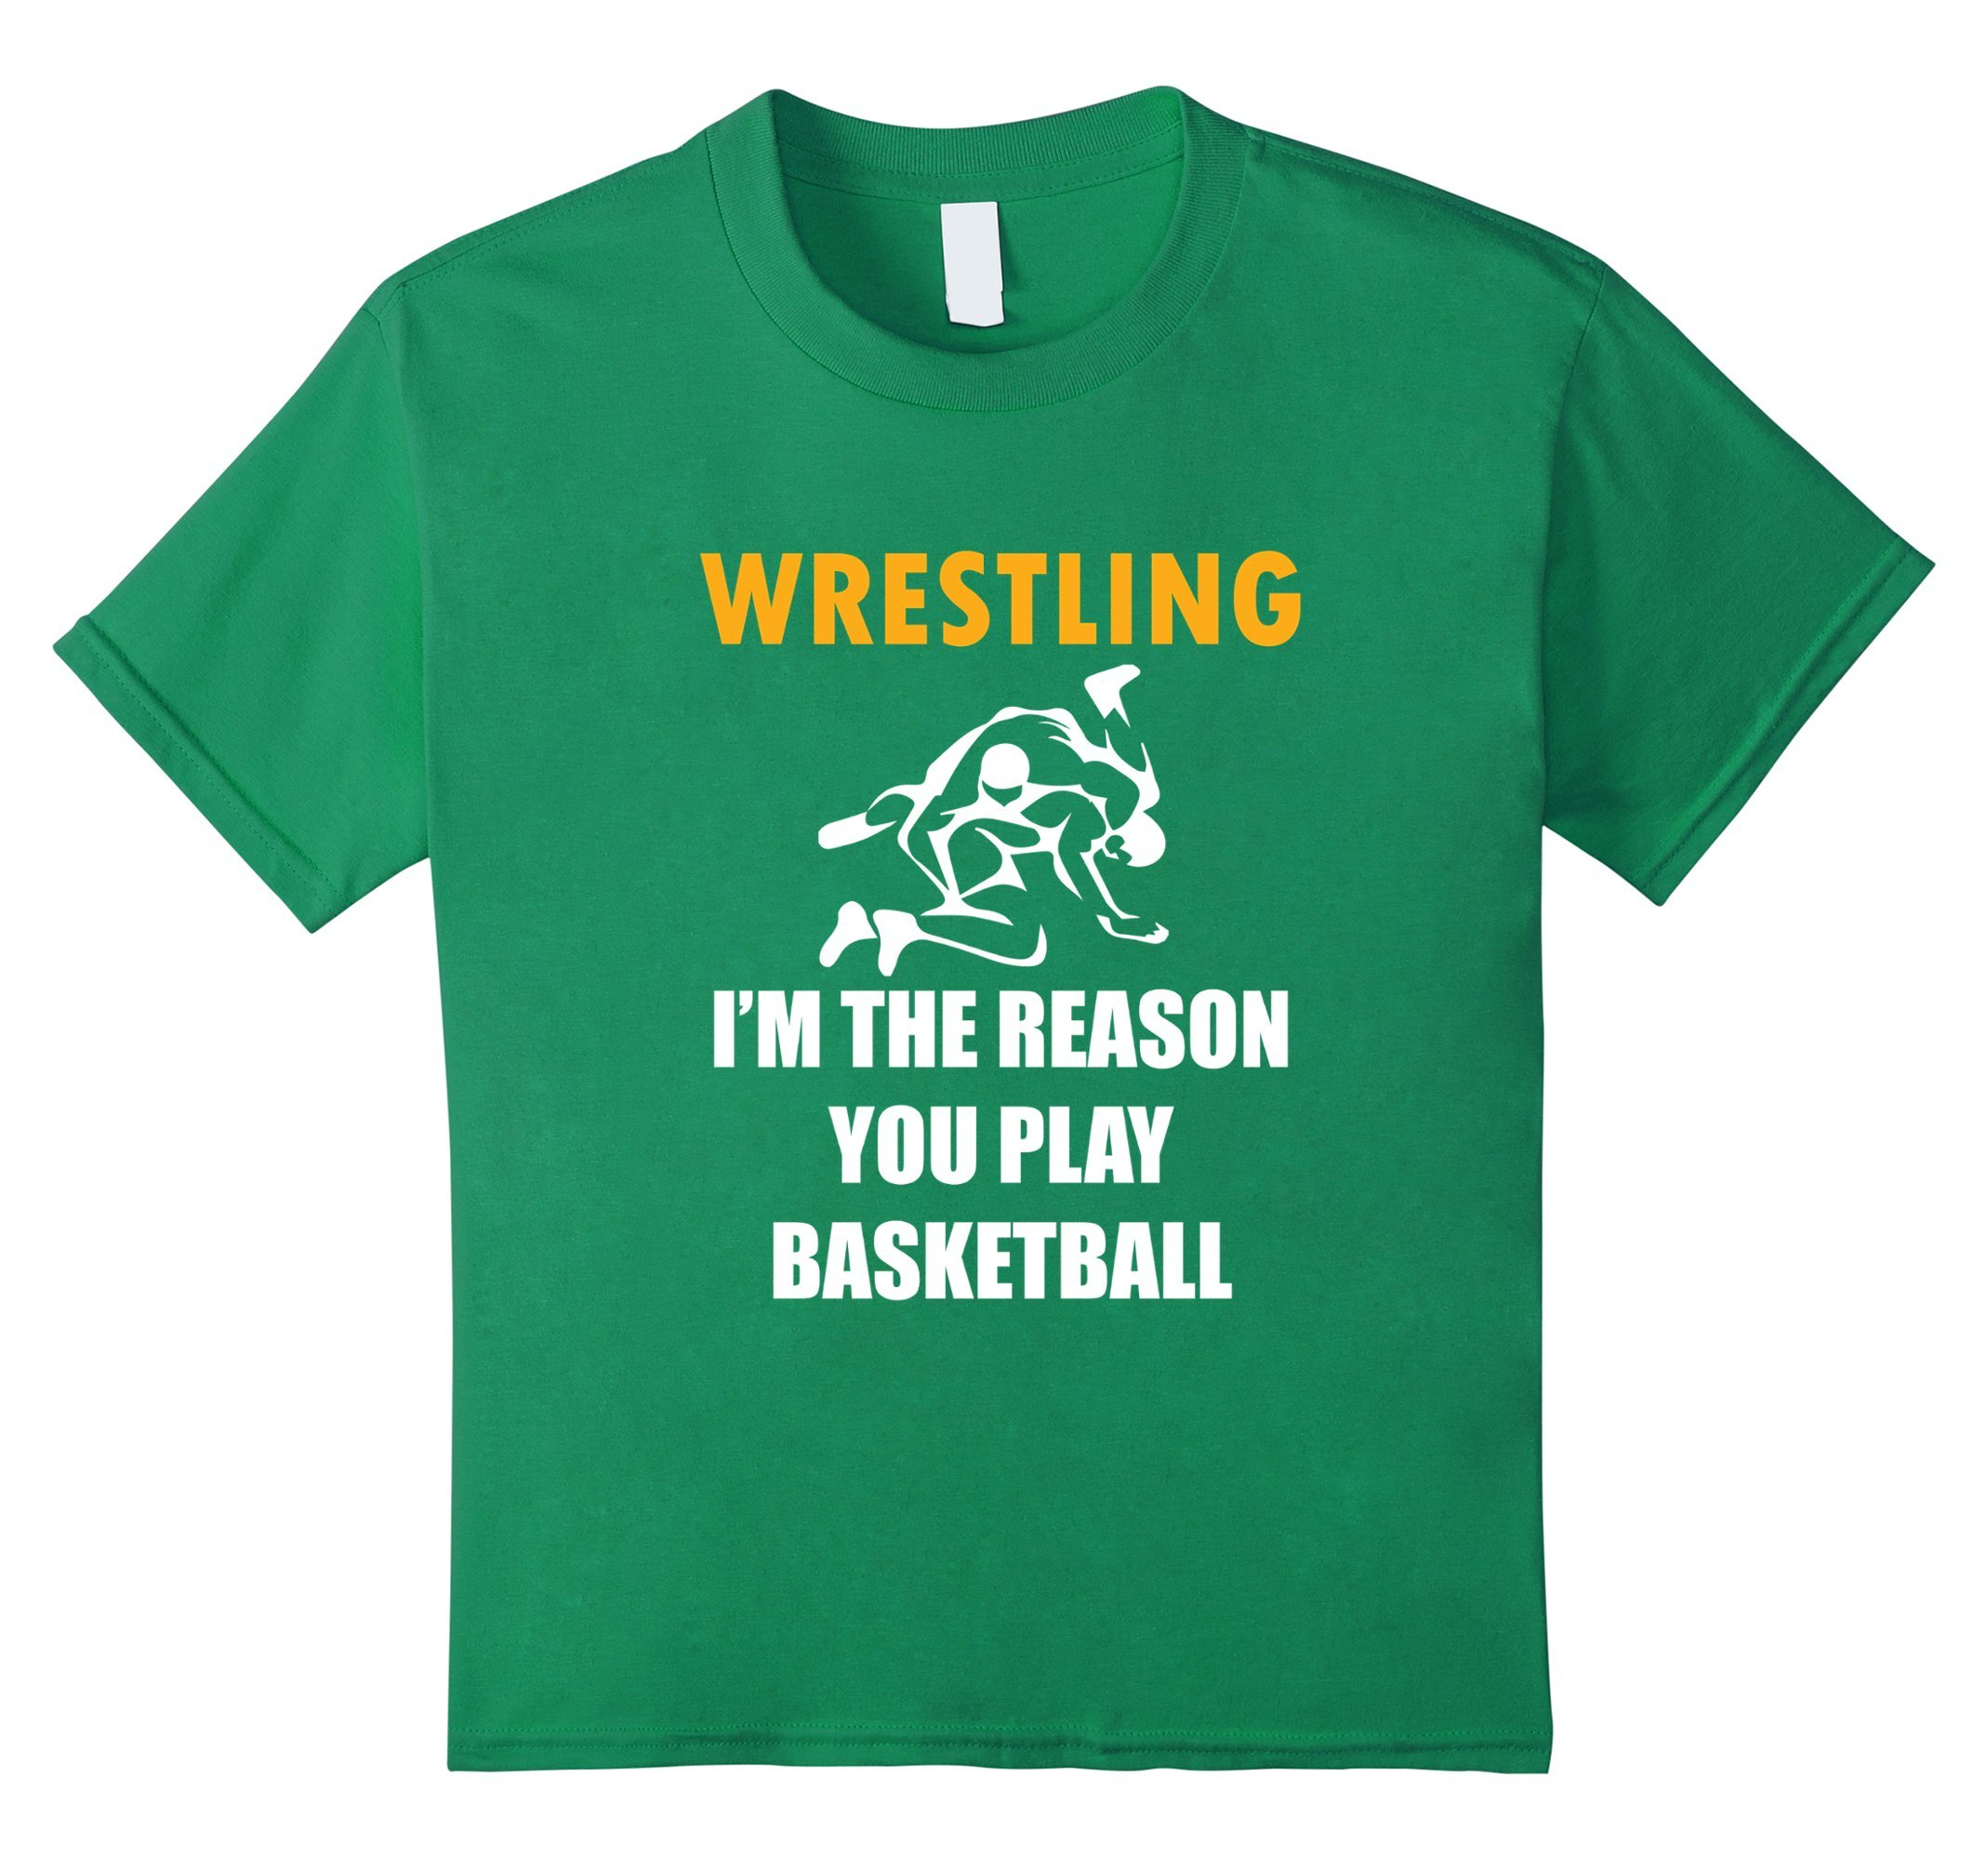 Kids Funny Wrestling Shirt Wrestling i m the reason 10 Kelly Green by Wrestling Apparel